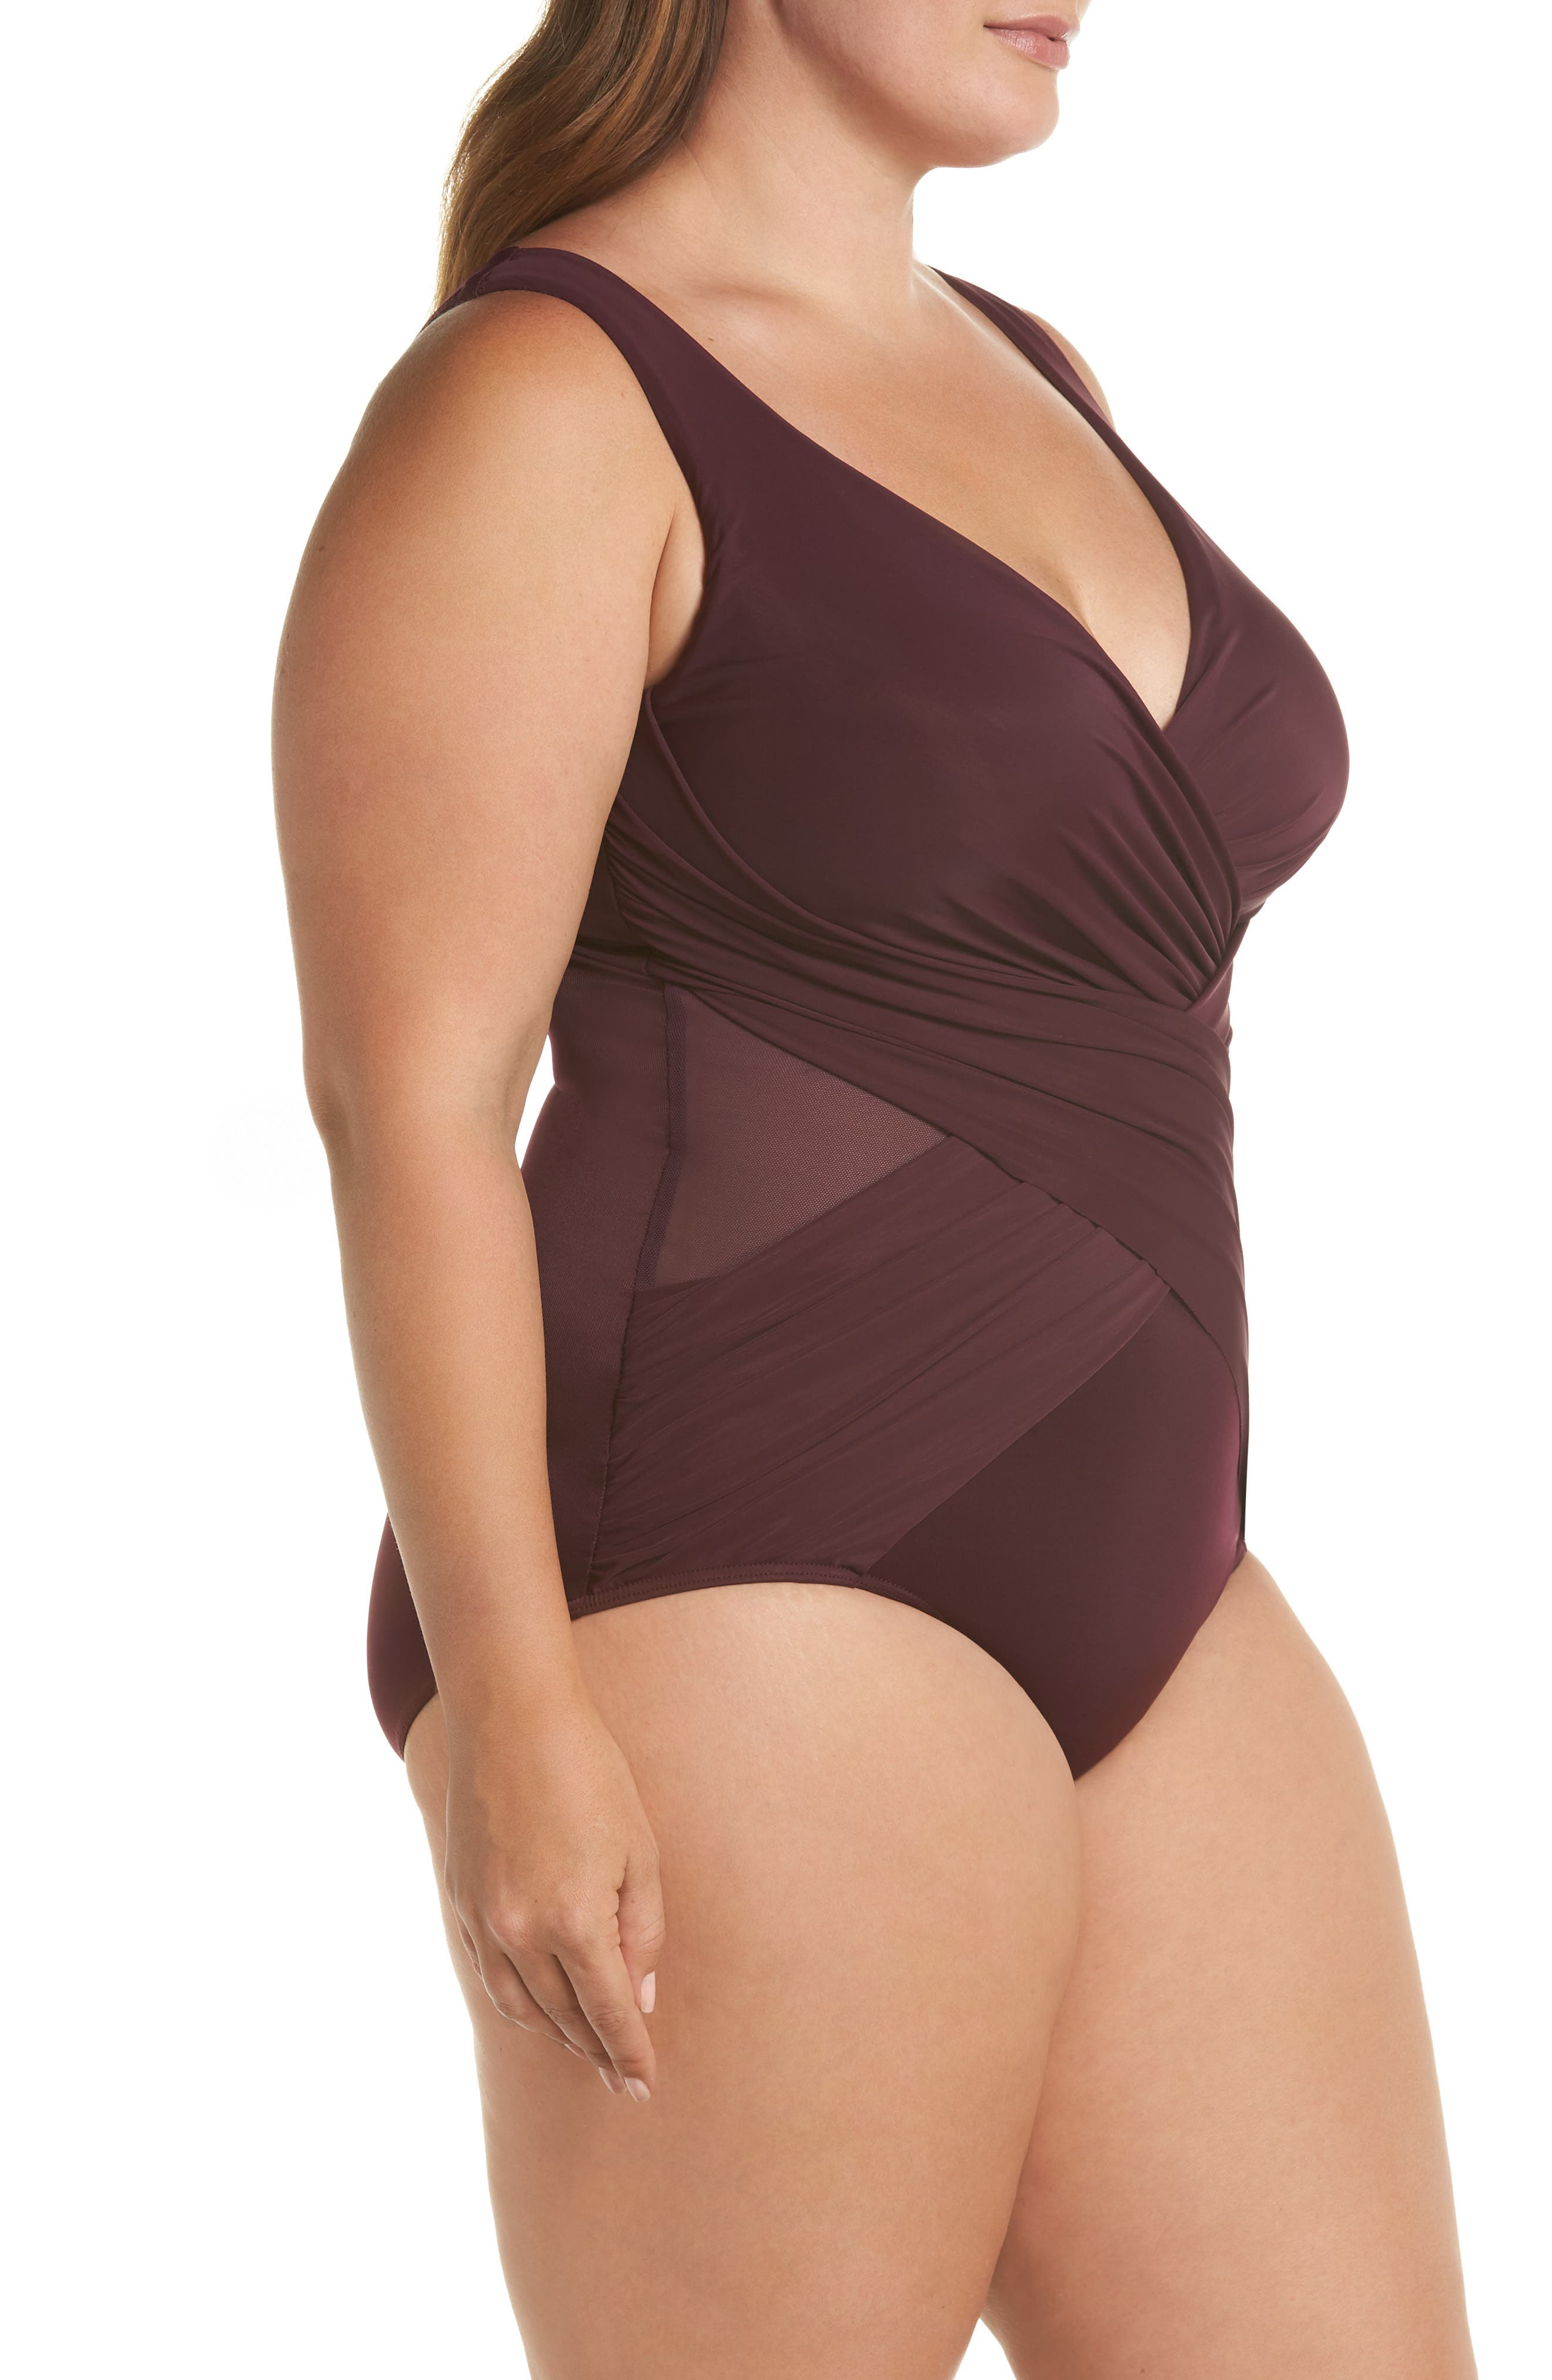 Illusionist Crossover One-Piece Swimsuit,                             Alternate thumbnail 3, color,                             SHIRAZ